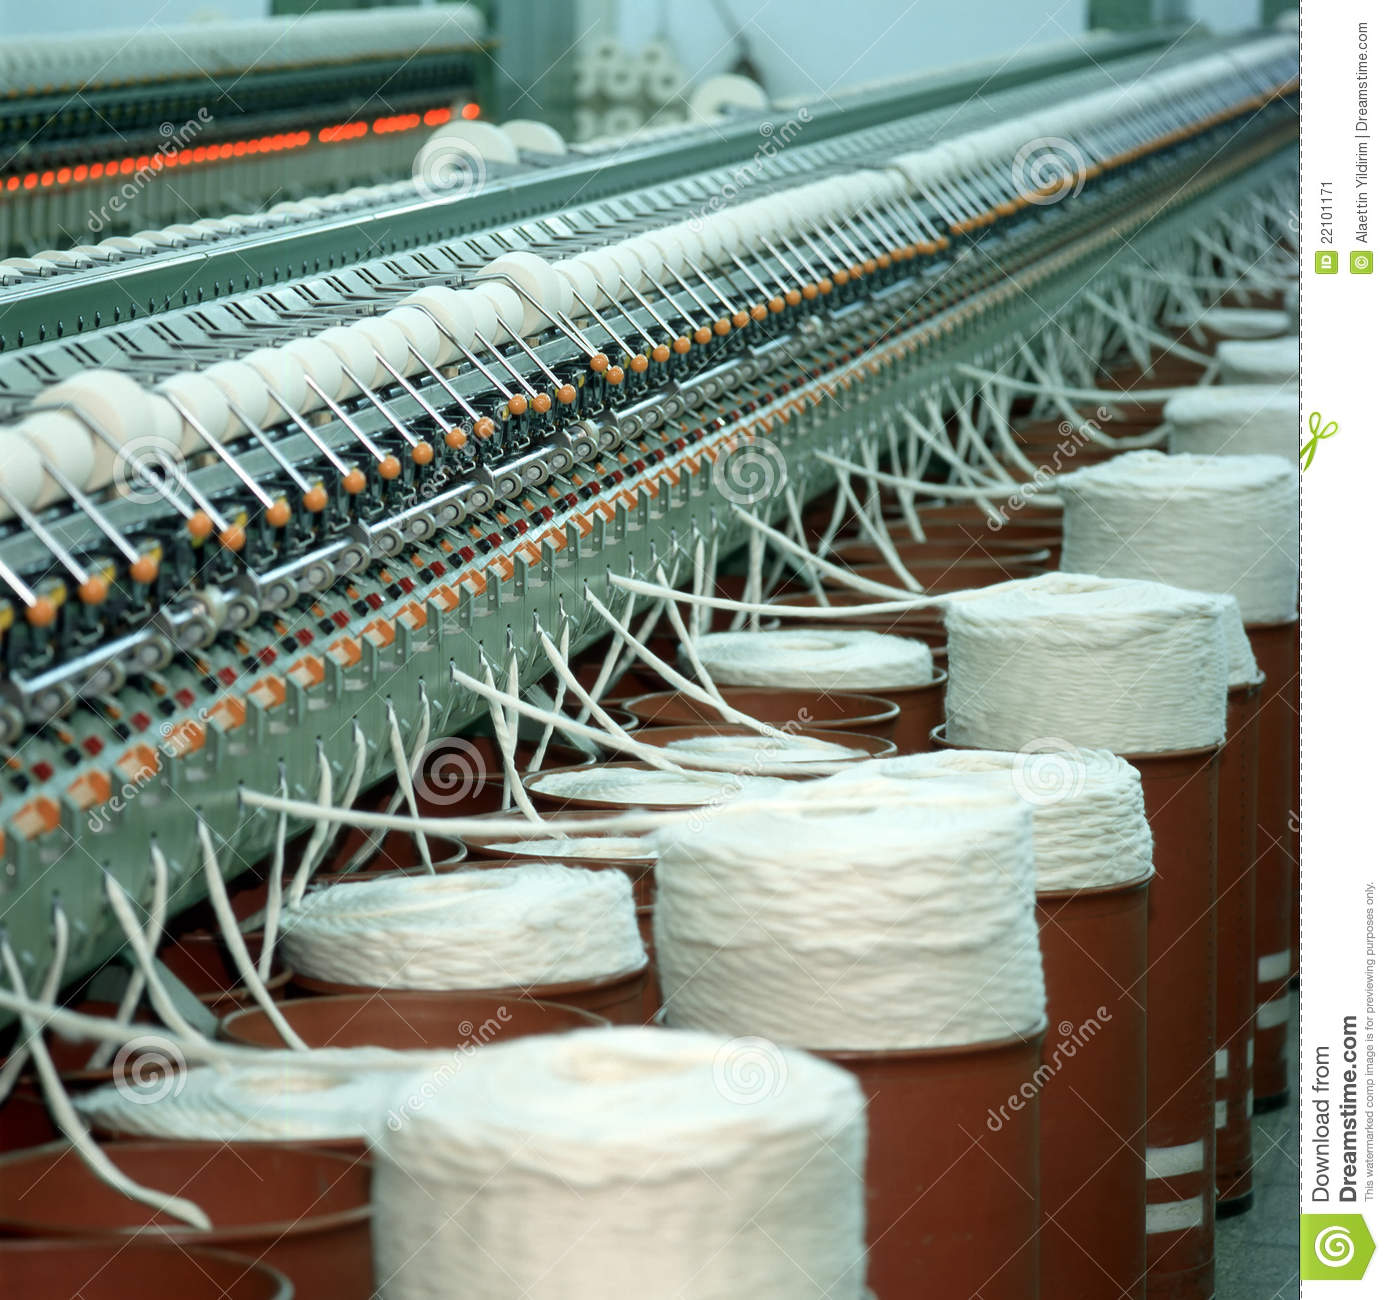 Textile industry in Bangladesh